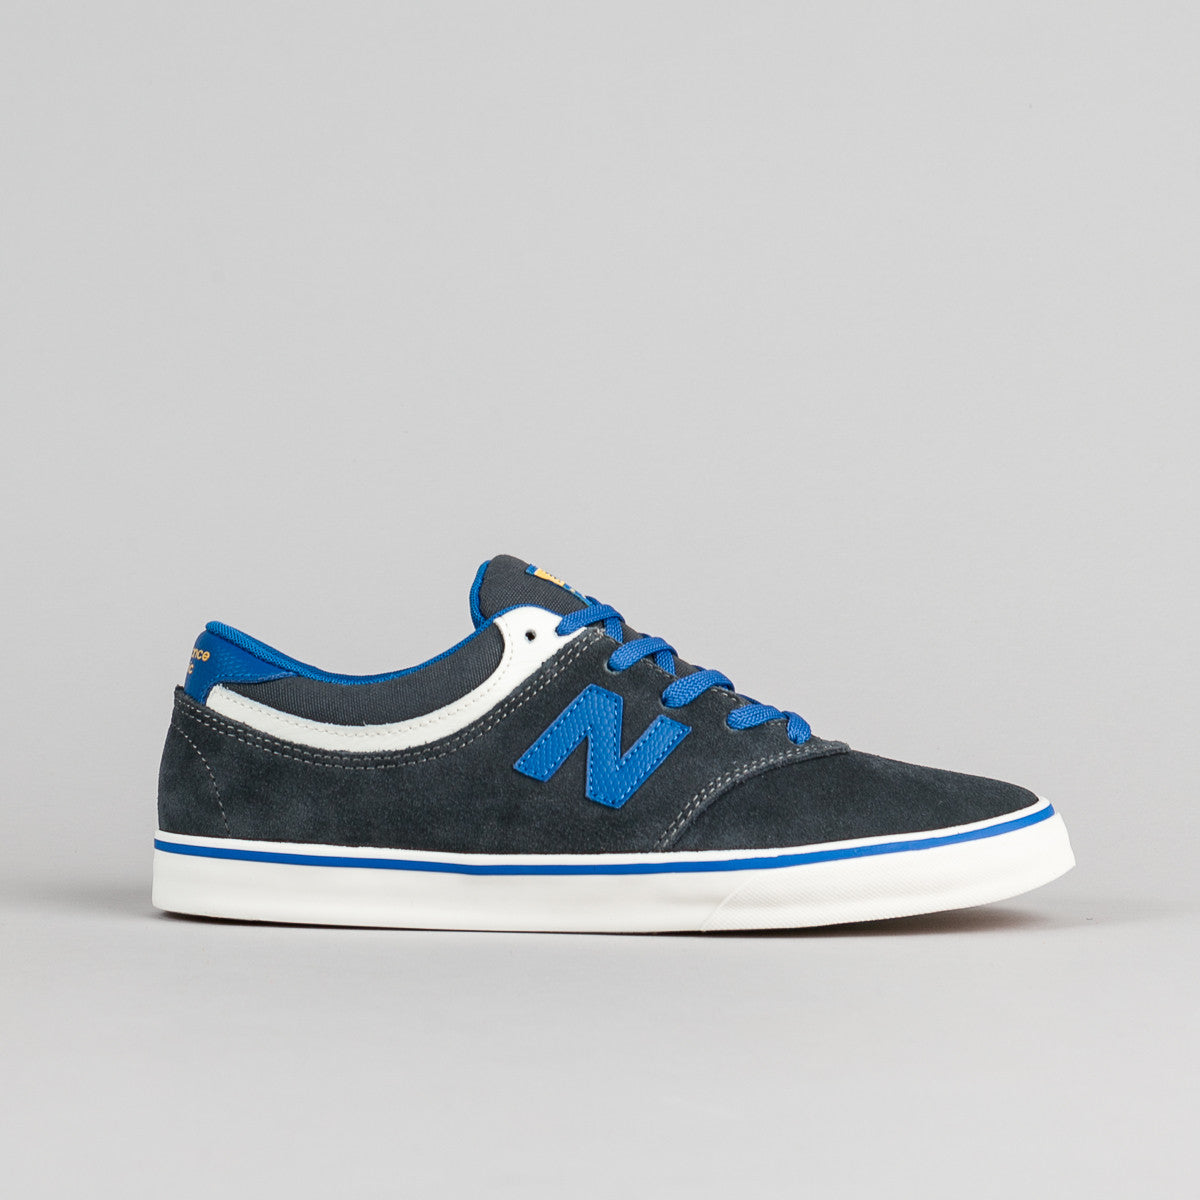 New Balance Numeric Quincy 254 Shoes - Blue / White